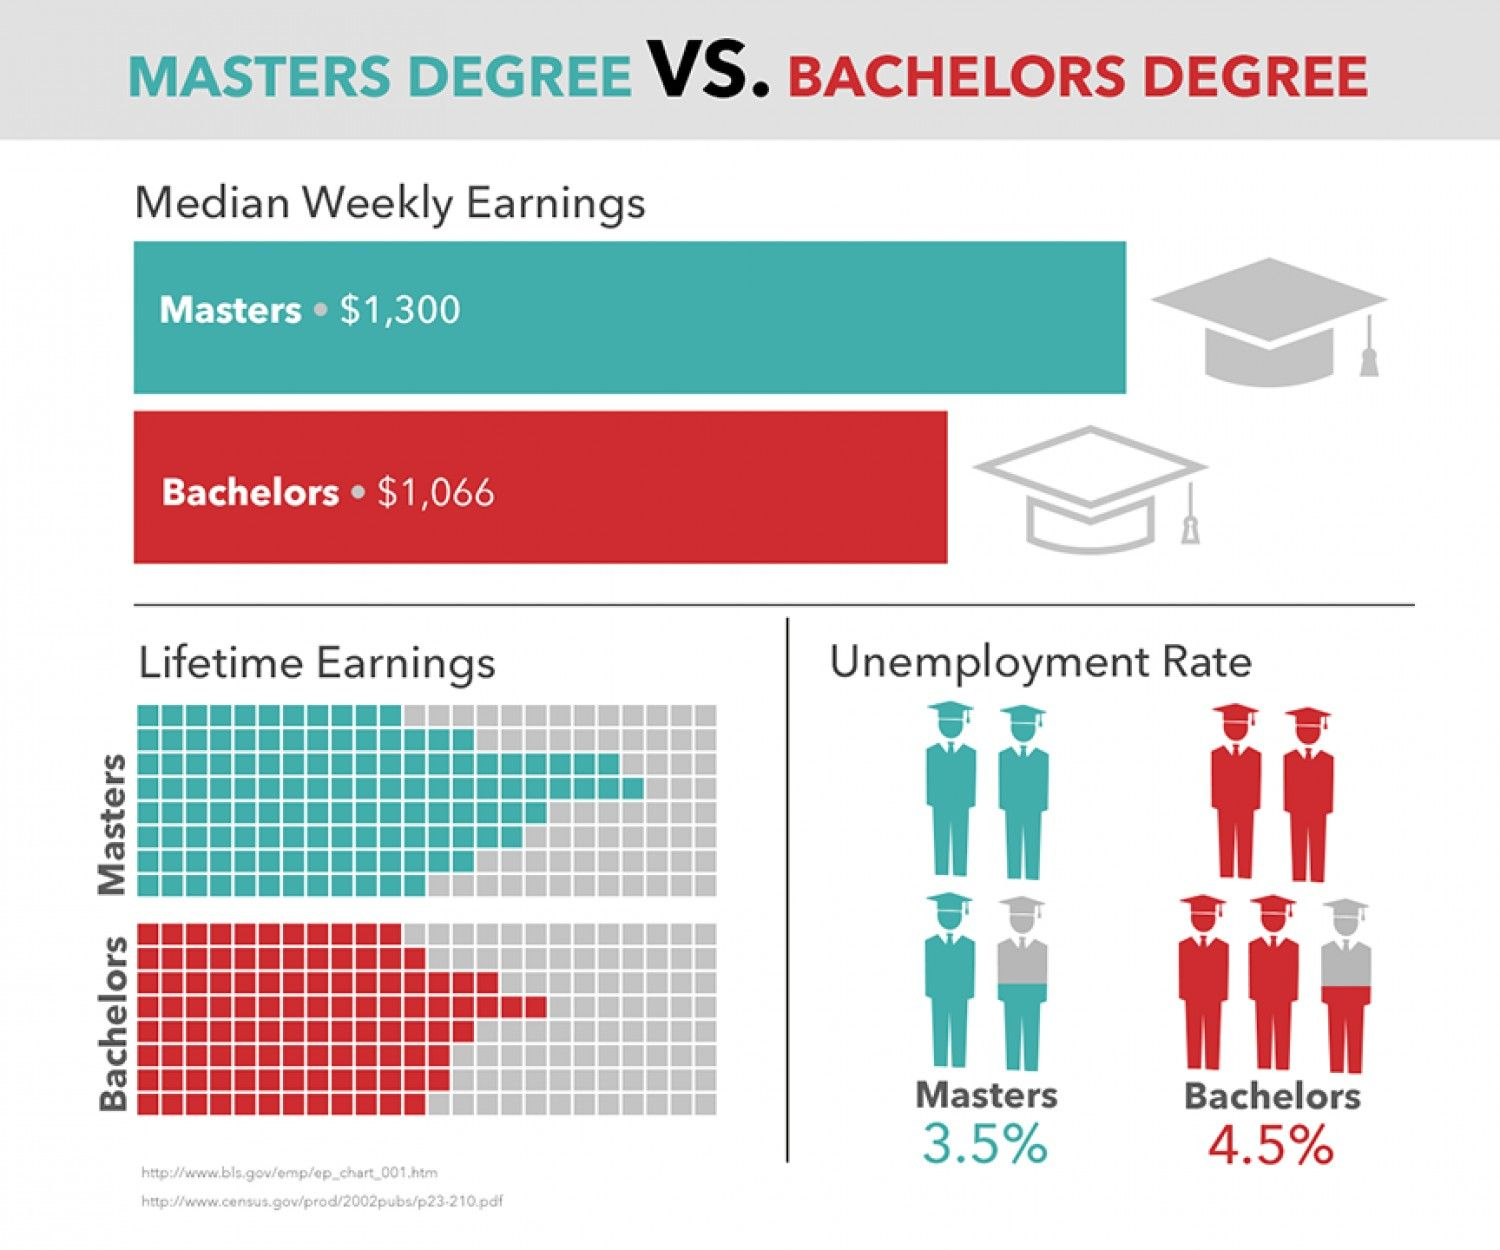 college  graduatedegree  education